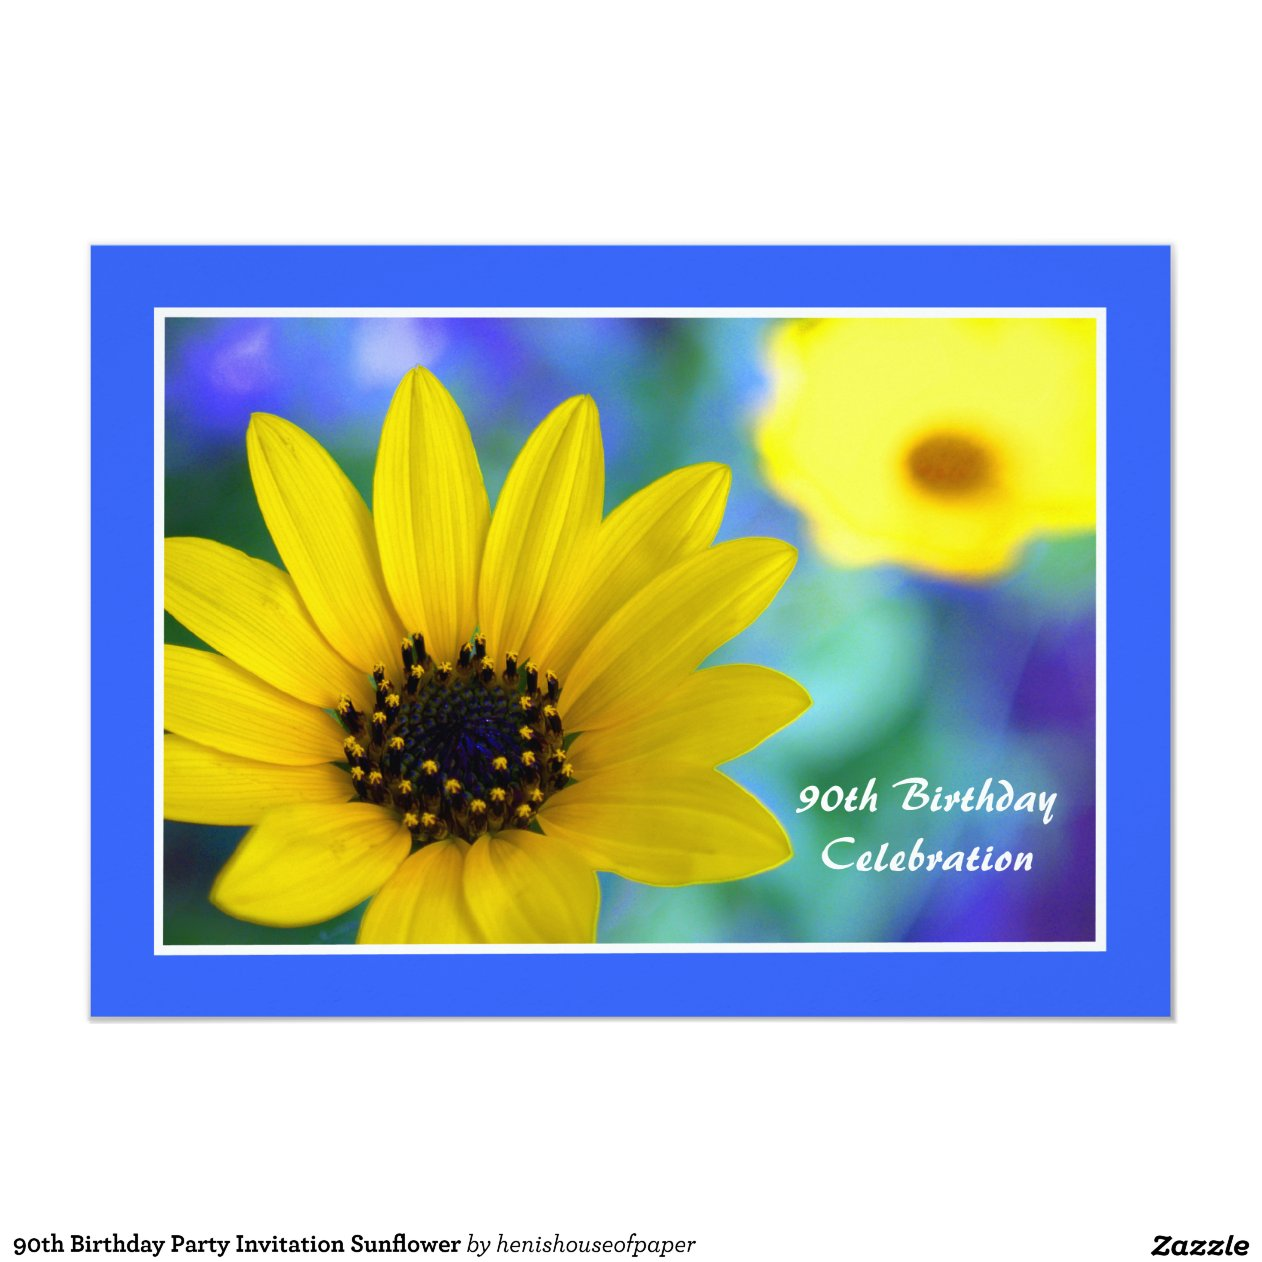 90th Birthday Party Invitation Sunflower